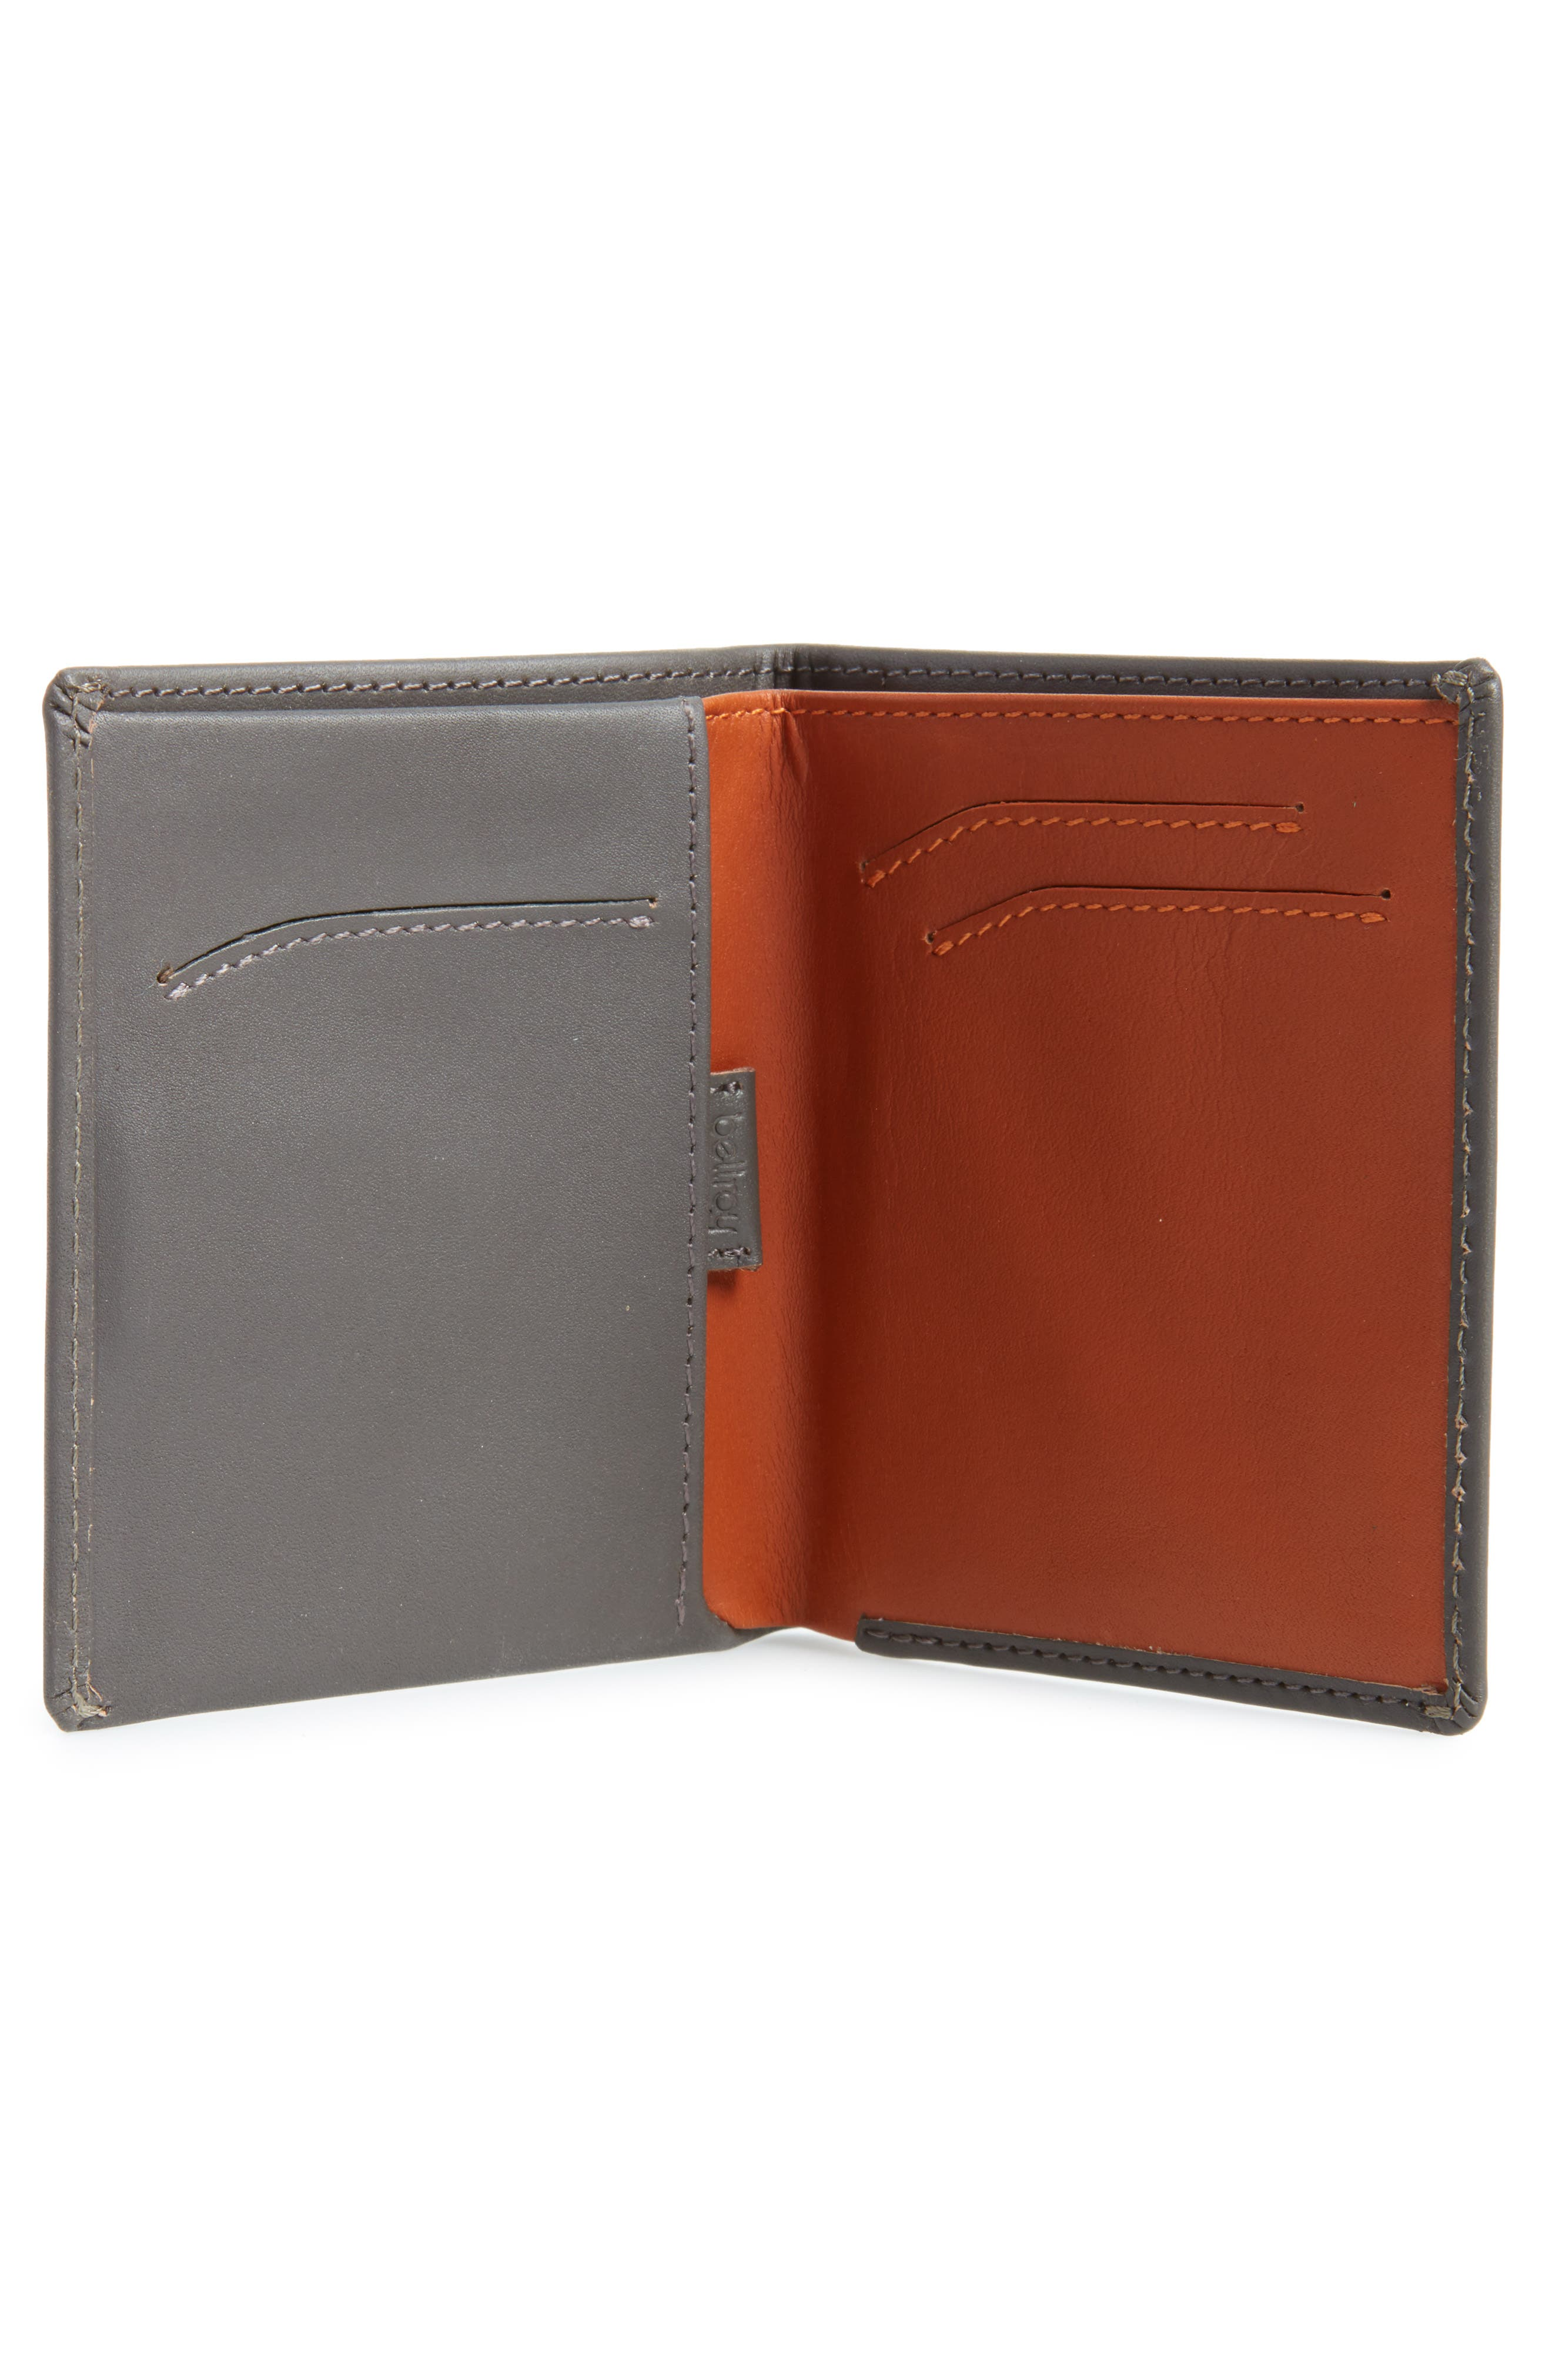 Note Sleeve Wallet,                             Alternate thumbnail 2, color,                             010